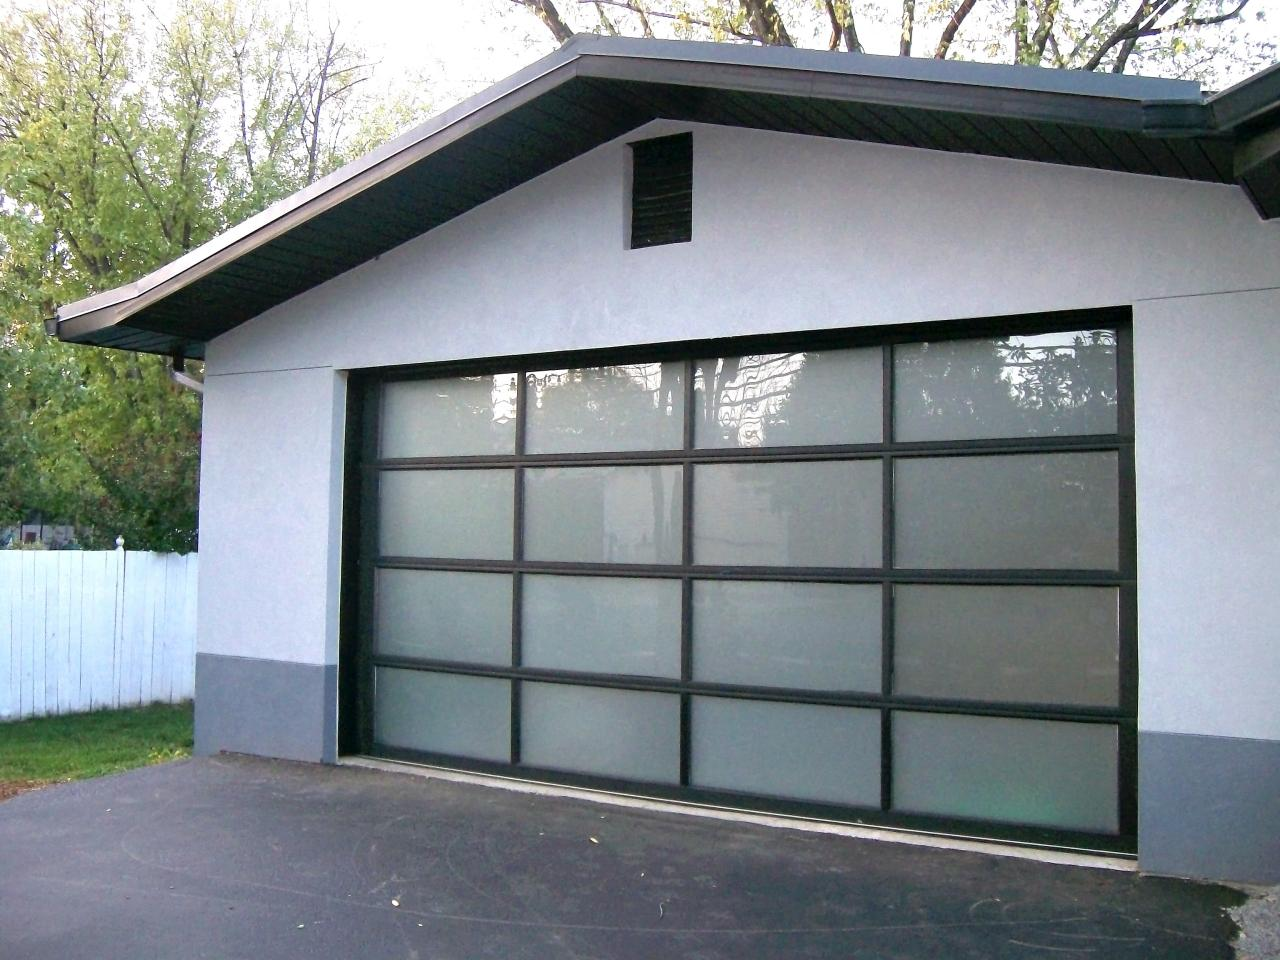 Le Meilleur Garage Door Buying Guide Diy Ce Mois Ci